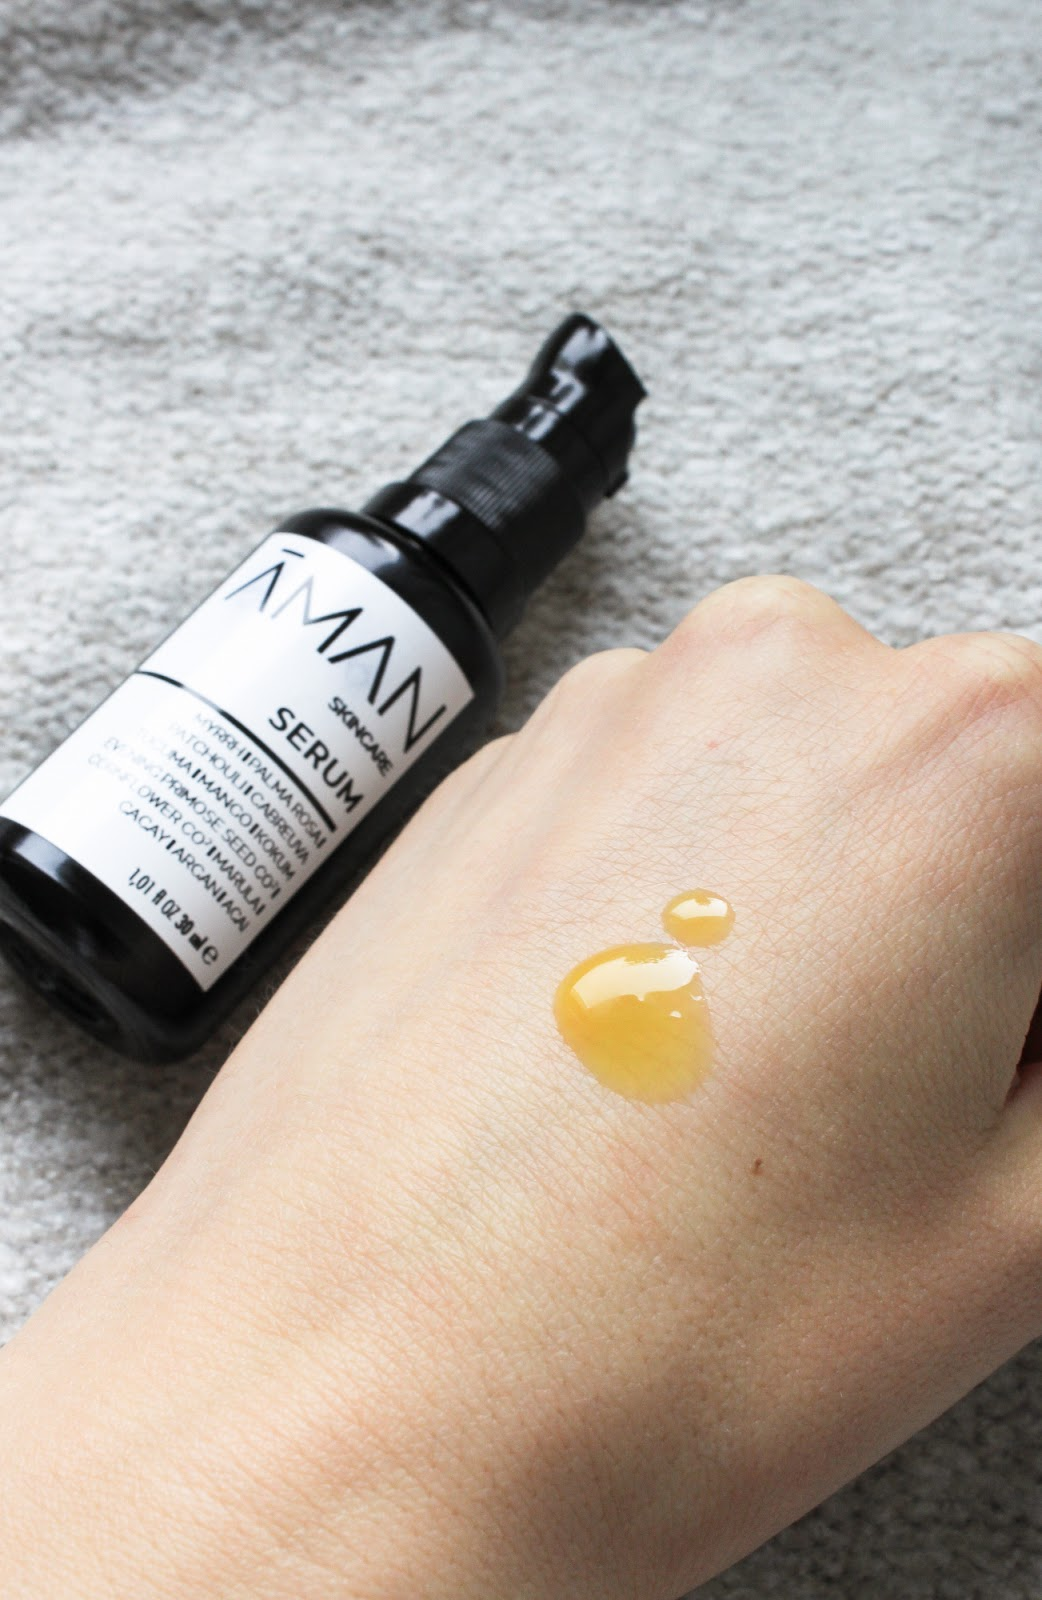 Emanufaktur Aman Skincare Serum. Liquid balm, brightening